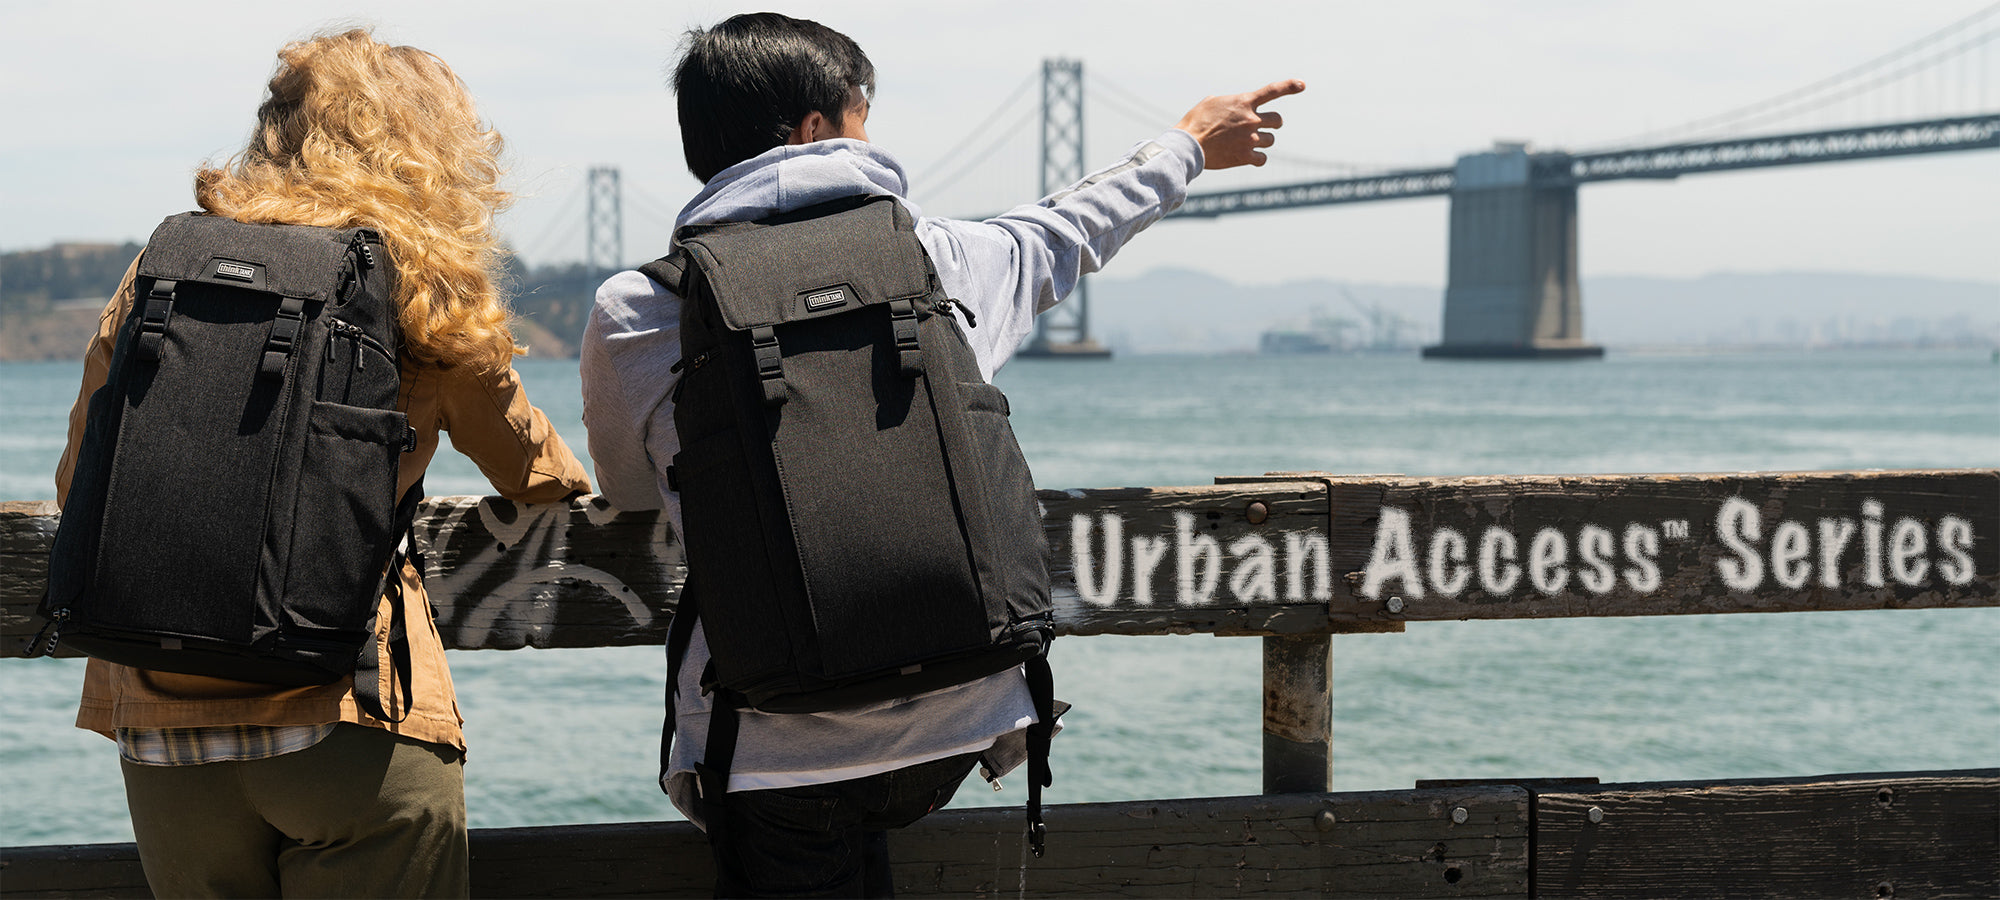 Urban Access enables you to get to your gear quickly—whether on the run or in the studio. Access panels on both sides enable you to sling the backpack left or right